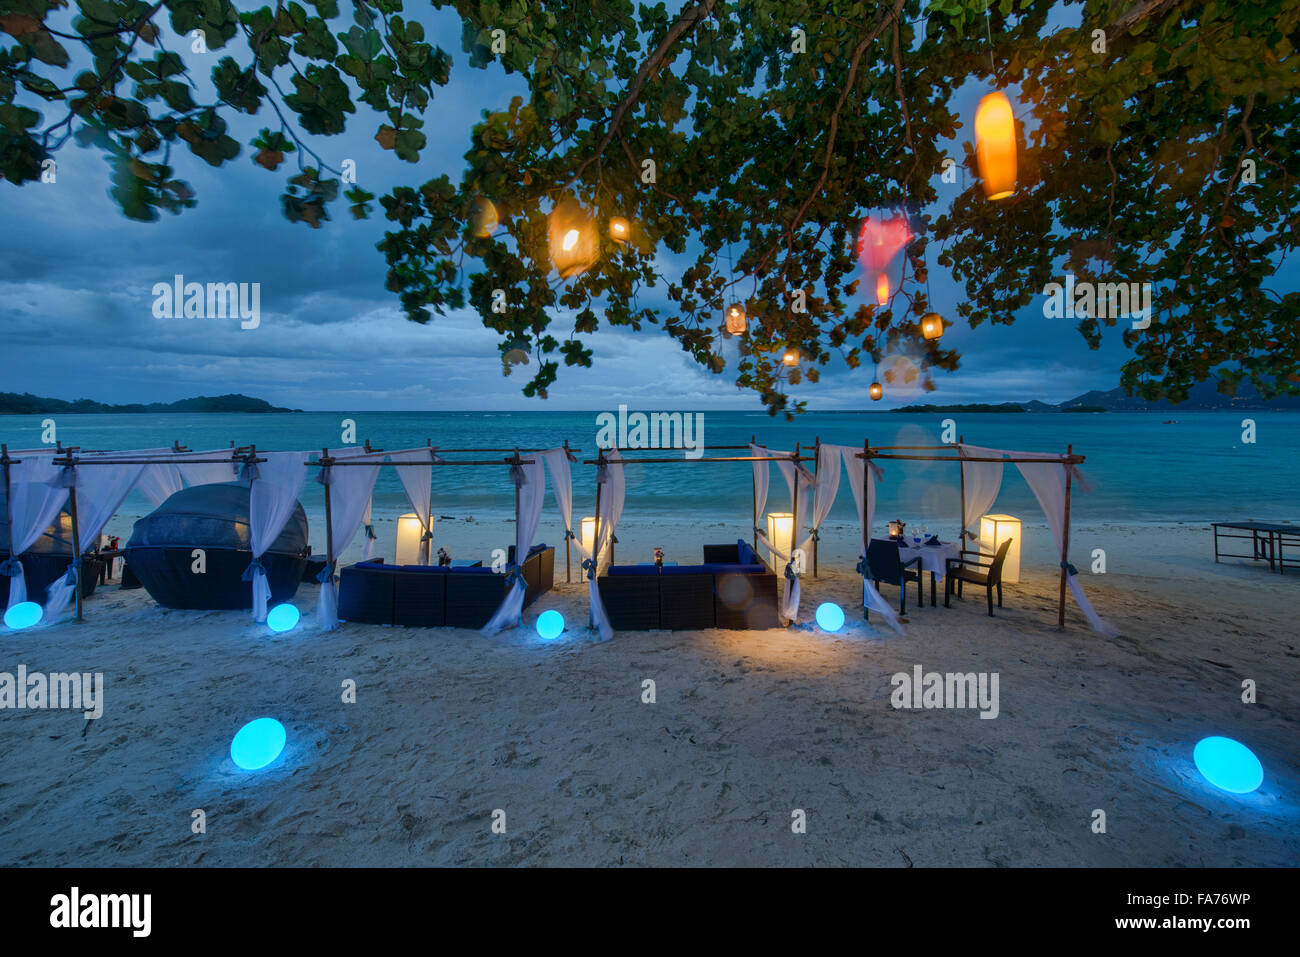 Romantic tables by the sea on Koh Samui island, Thailand - Stock Image